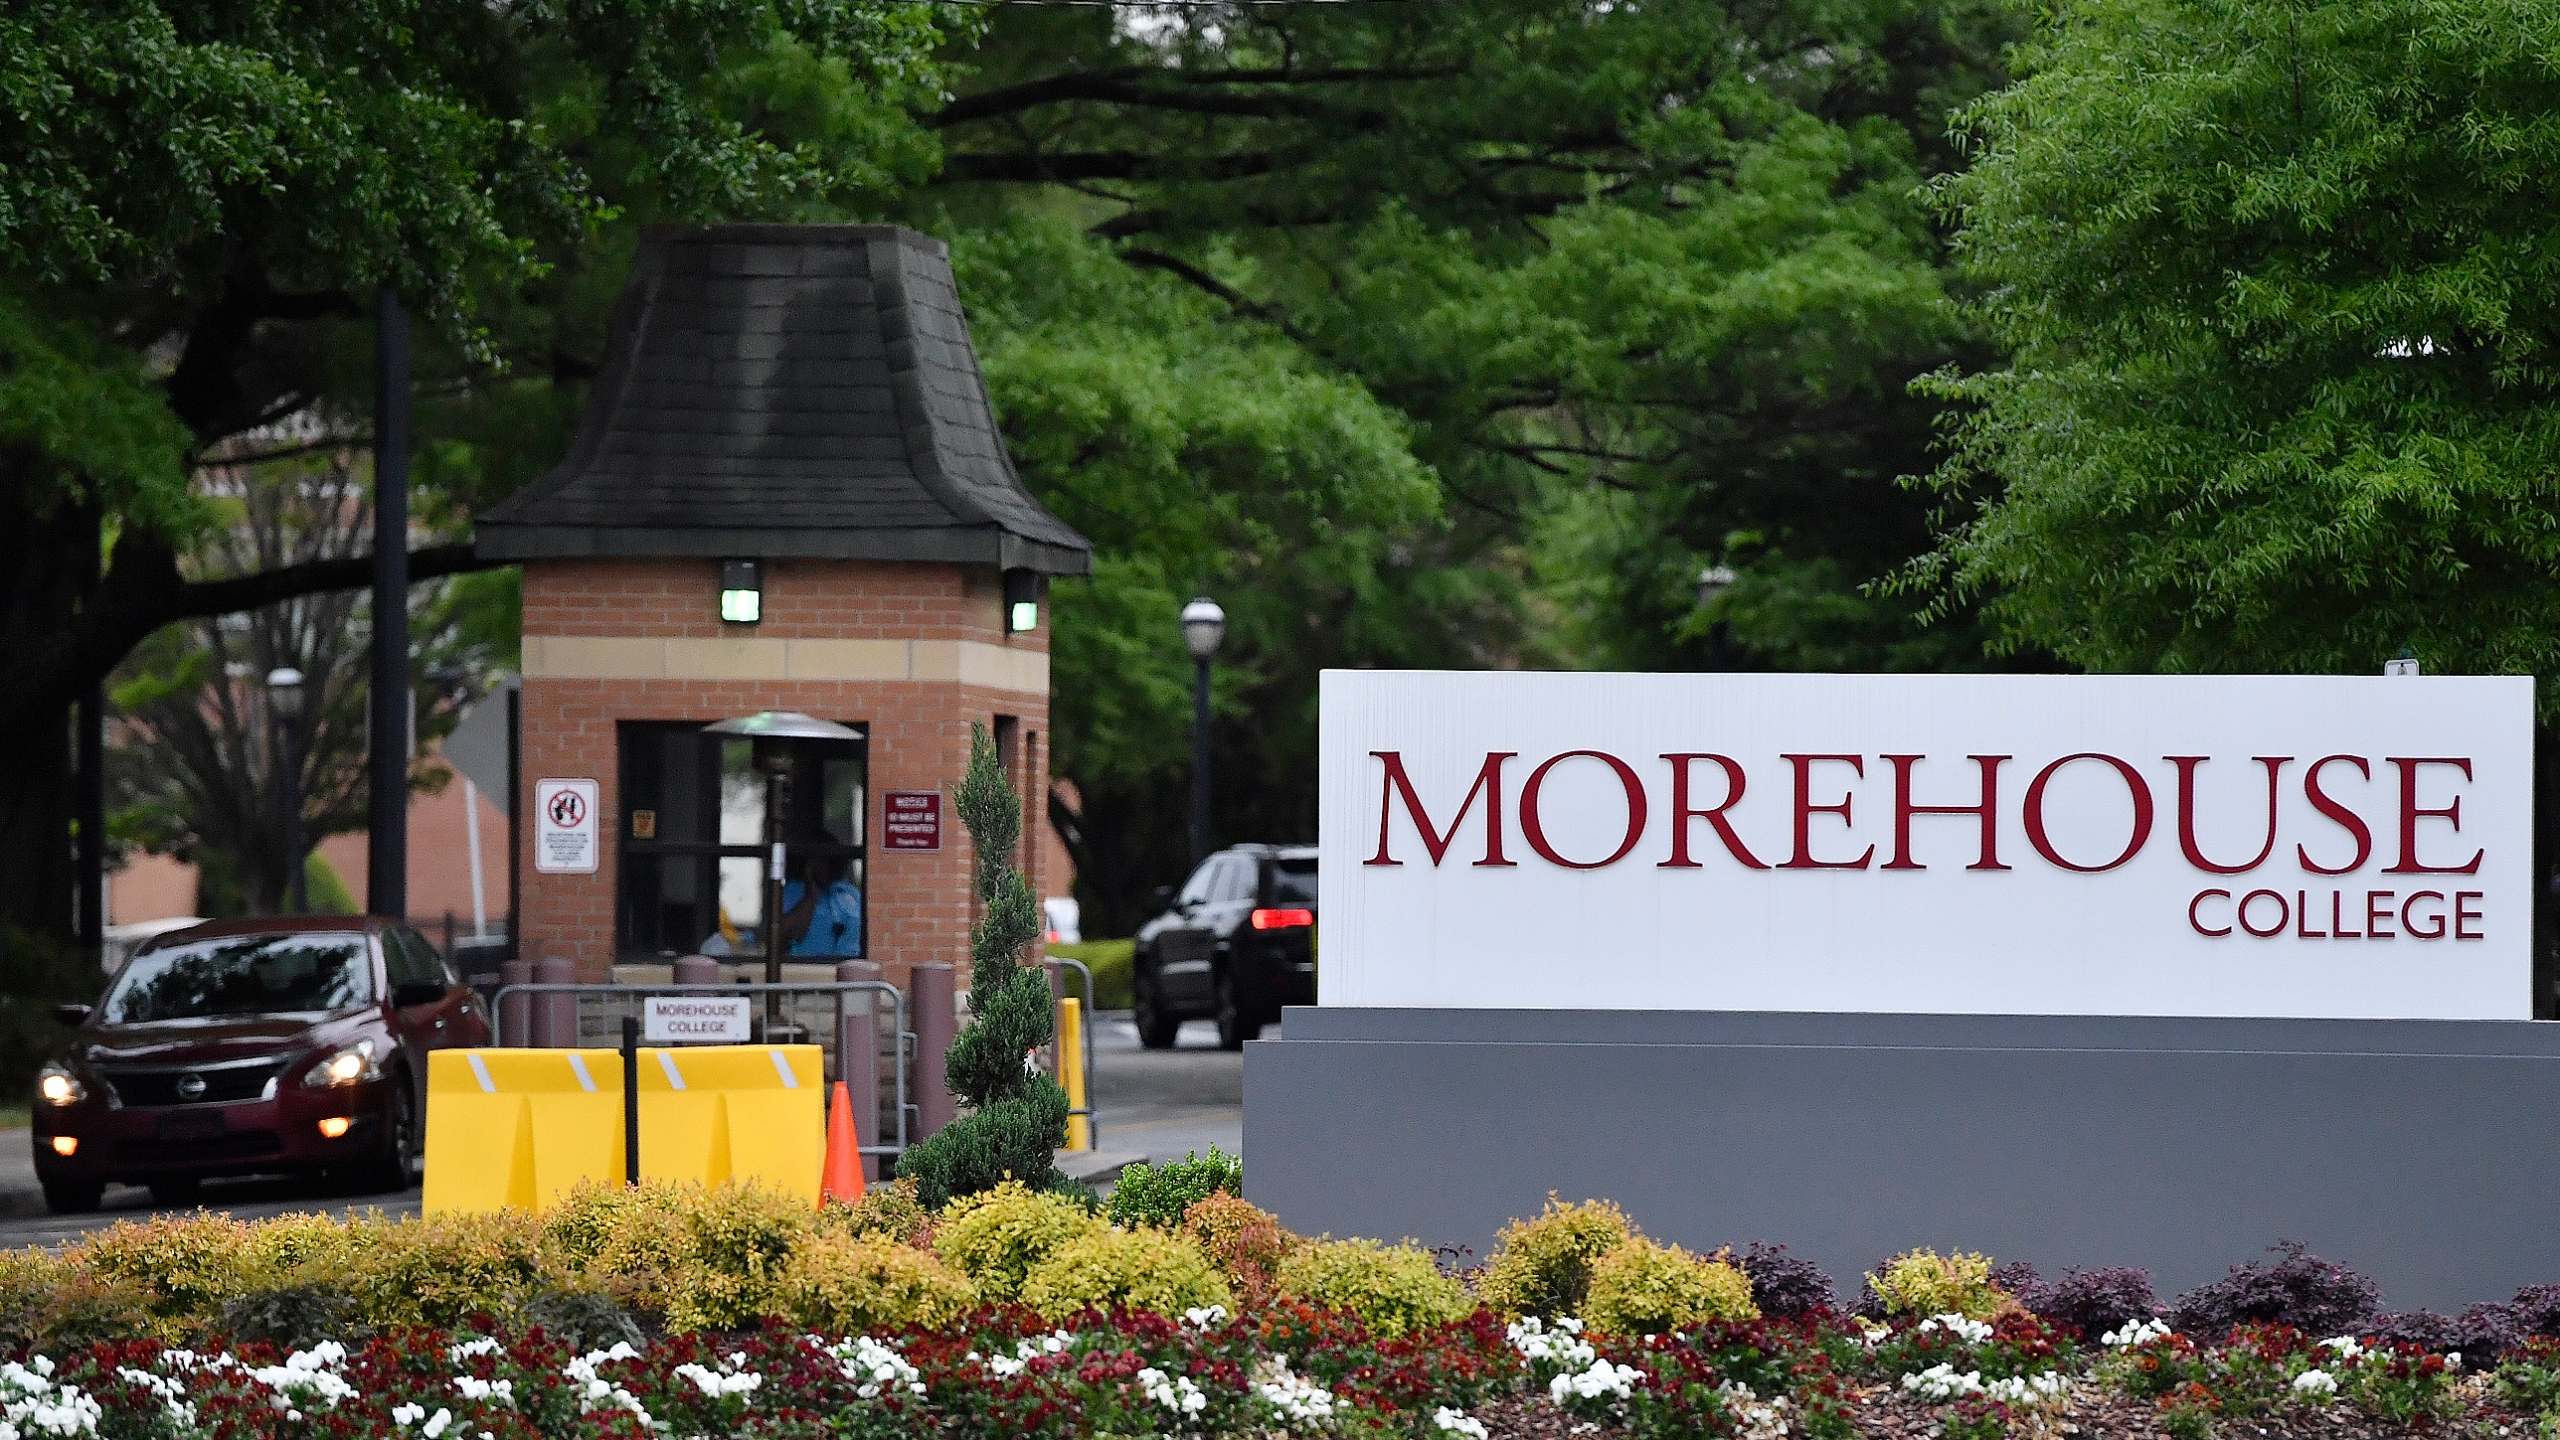 Morehouse_College_Transgender_97379-159532.jpg27043363